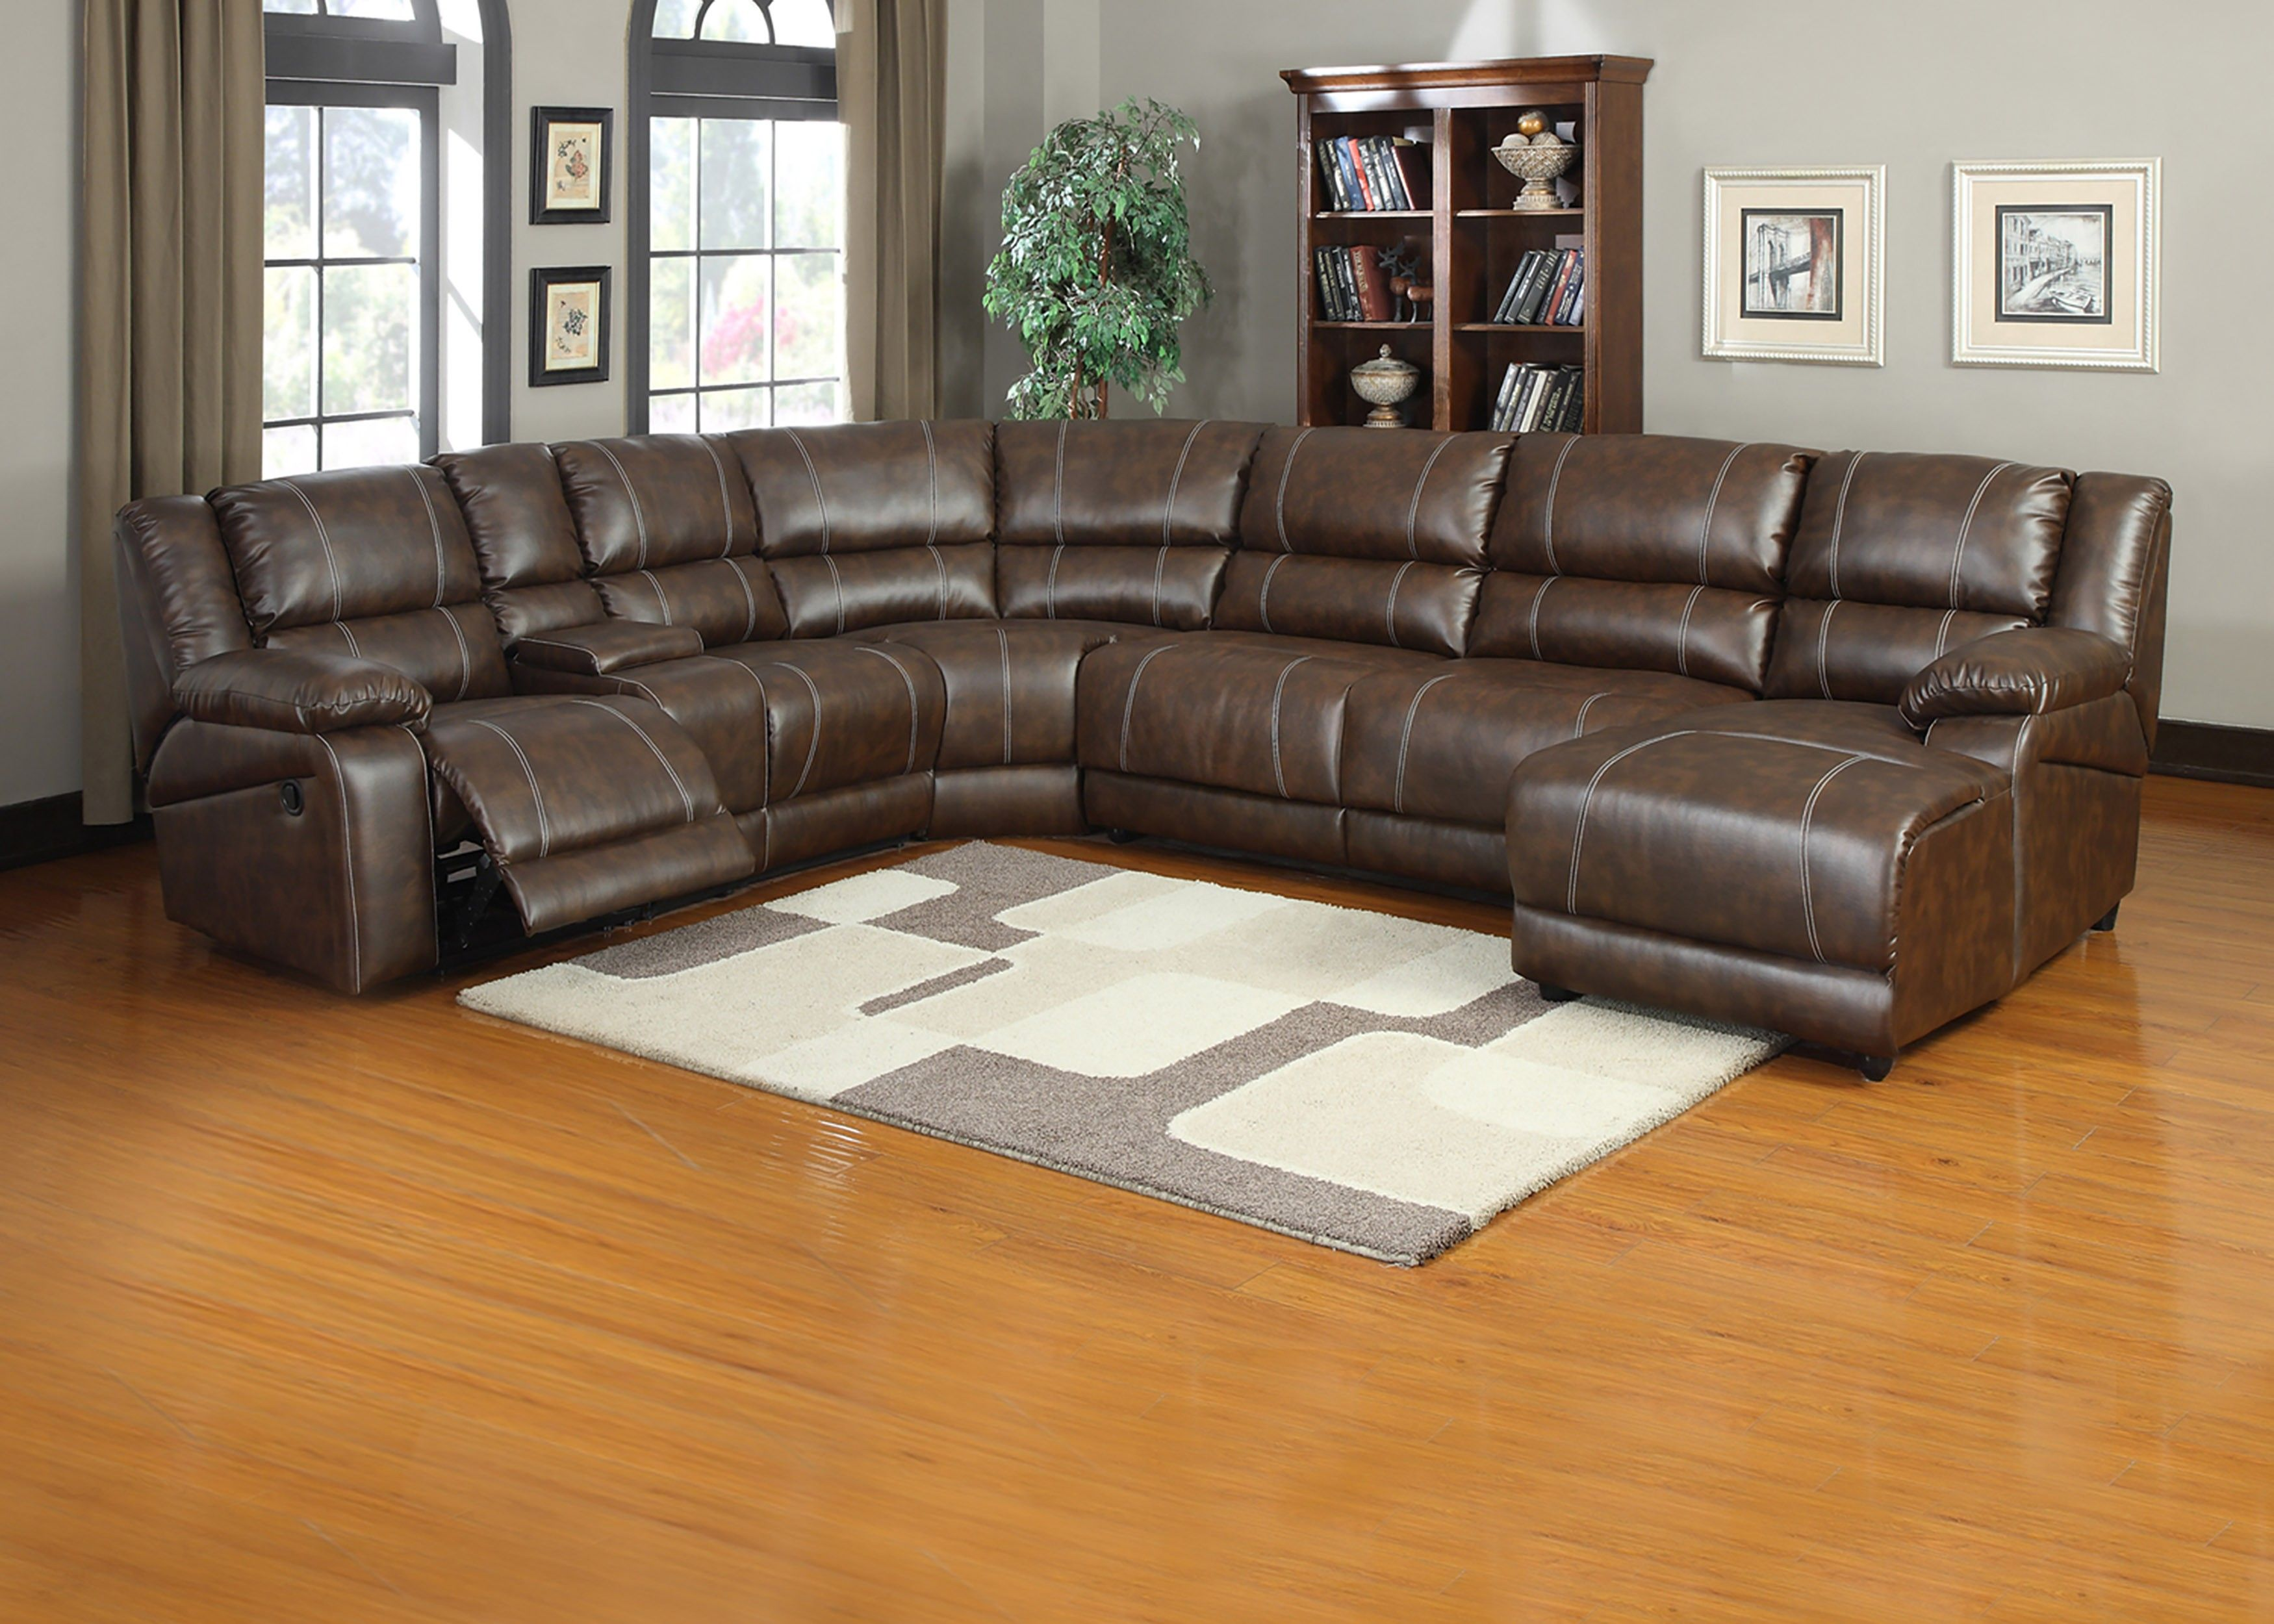 6 pieces saddle brown bonded leather reclining sofa for Bonded leather sectional with chaise